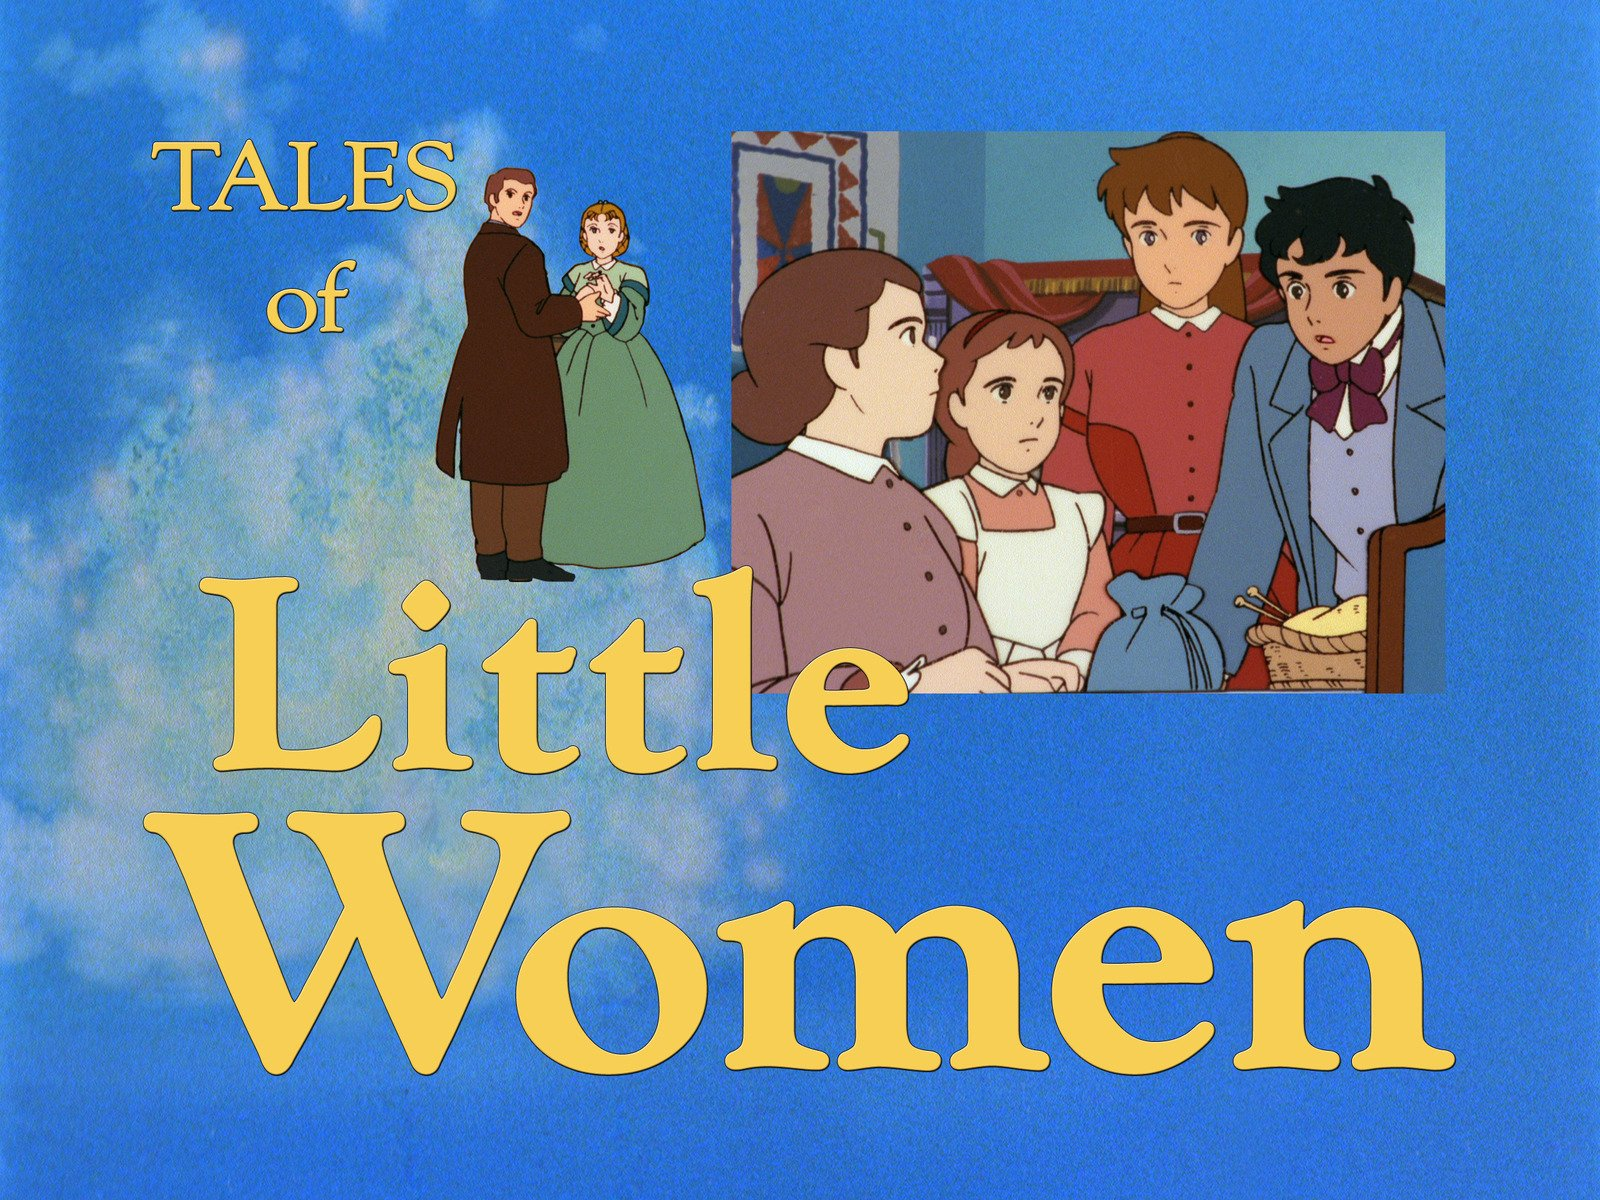 Tales Of Little Women - Season 4